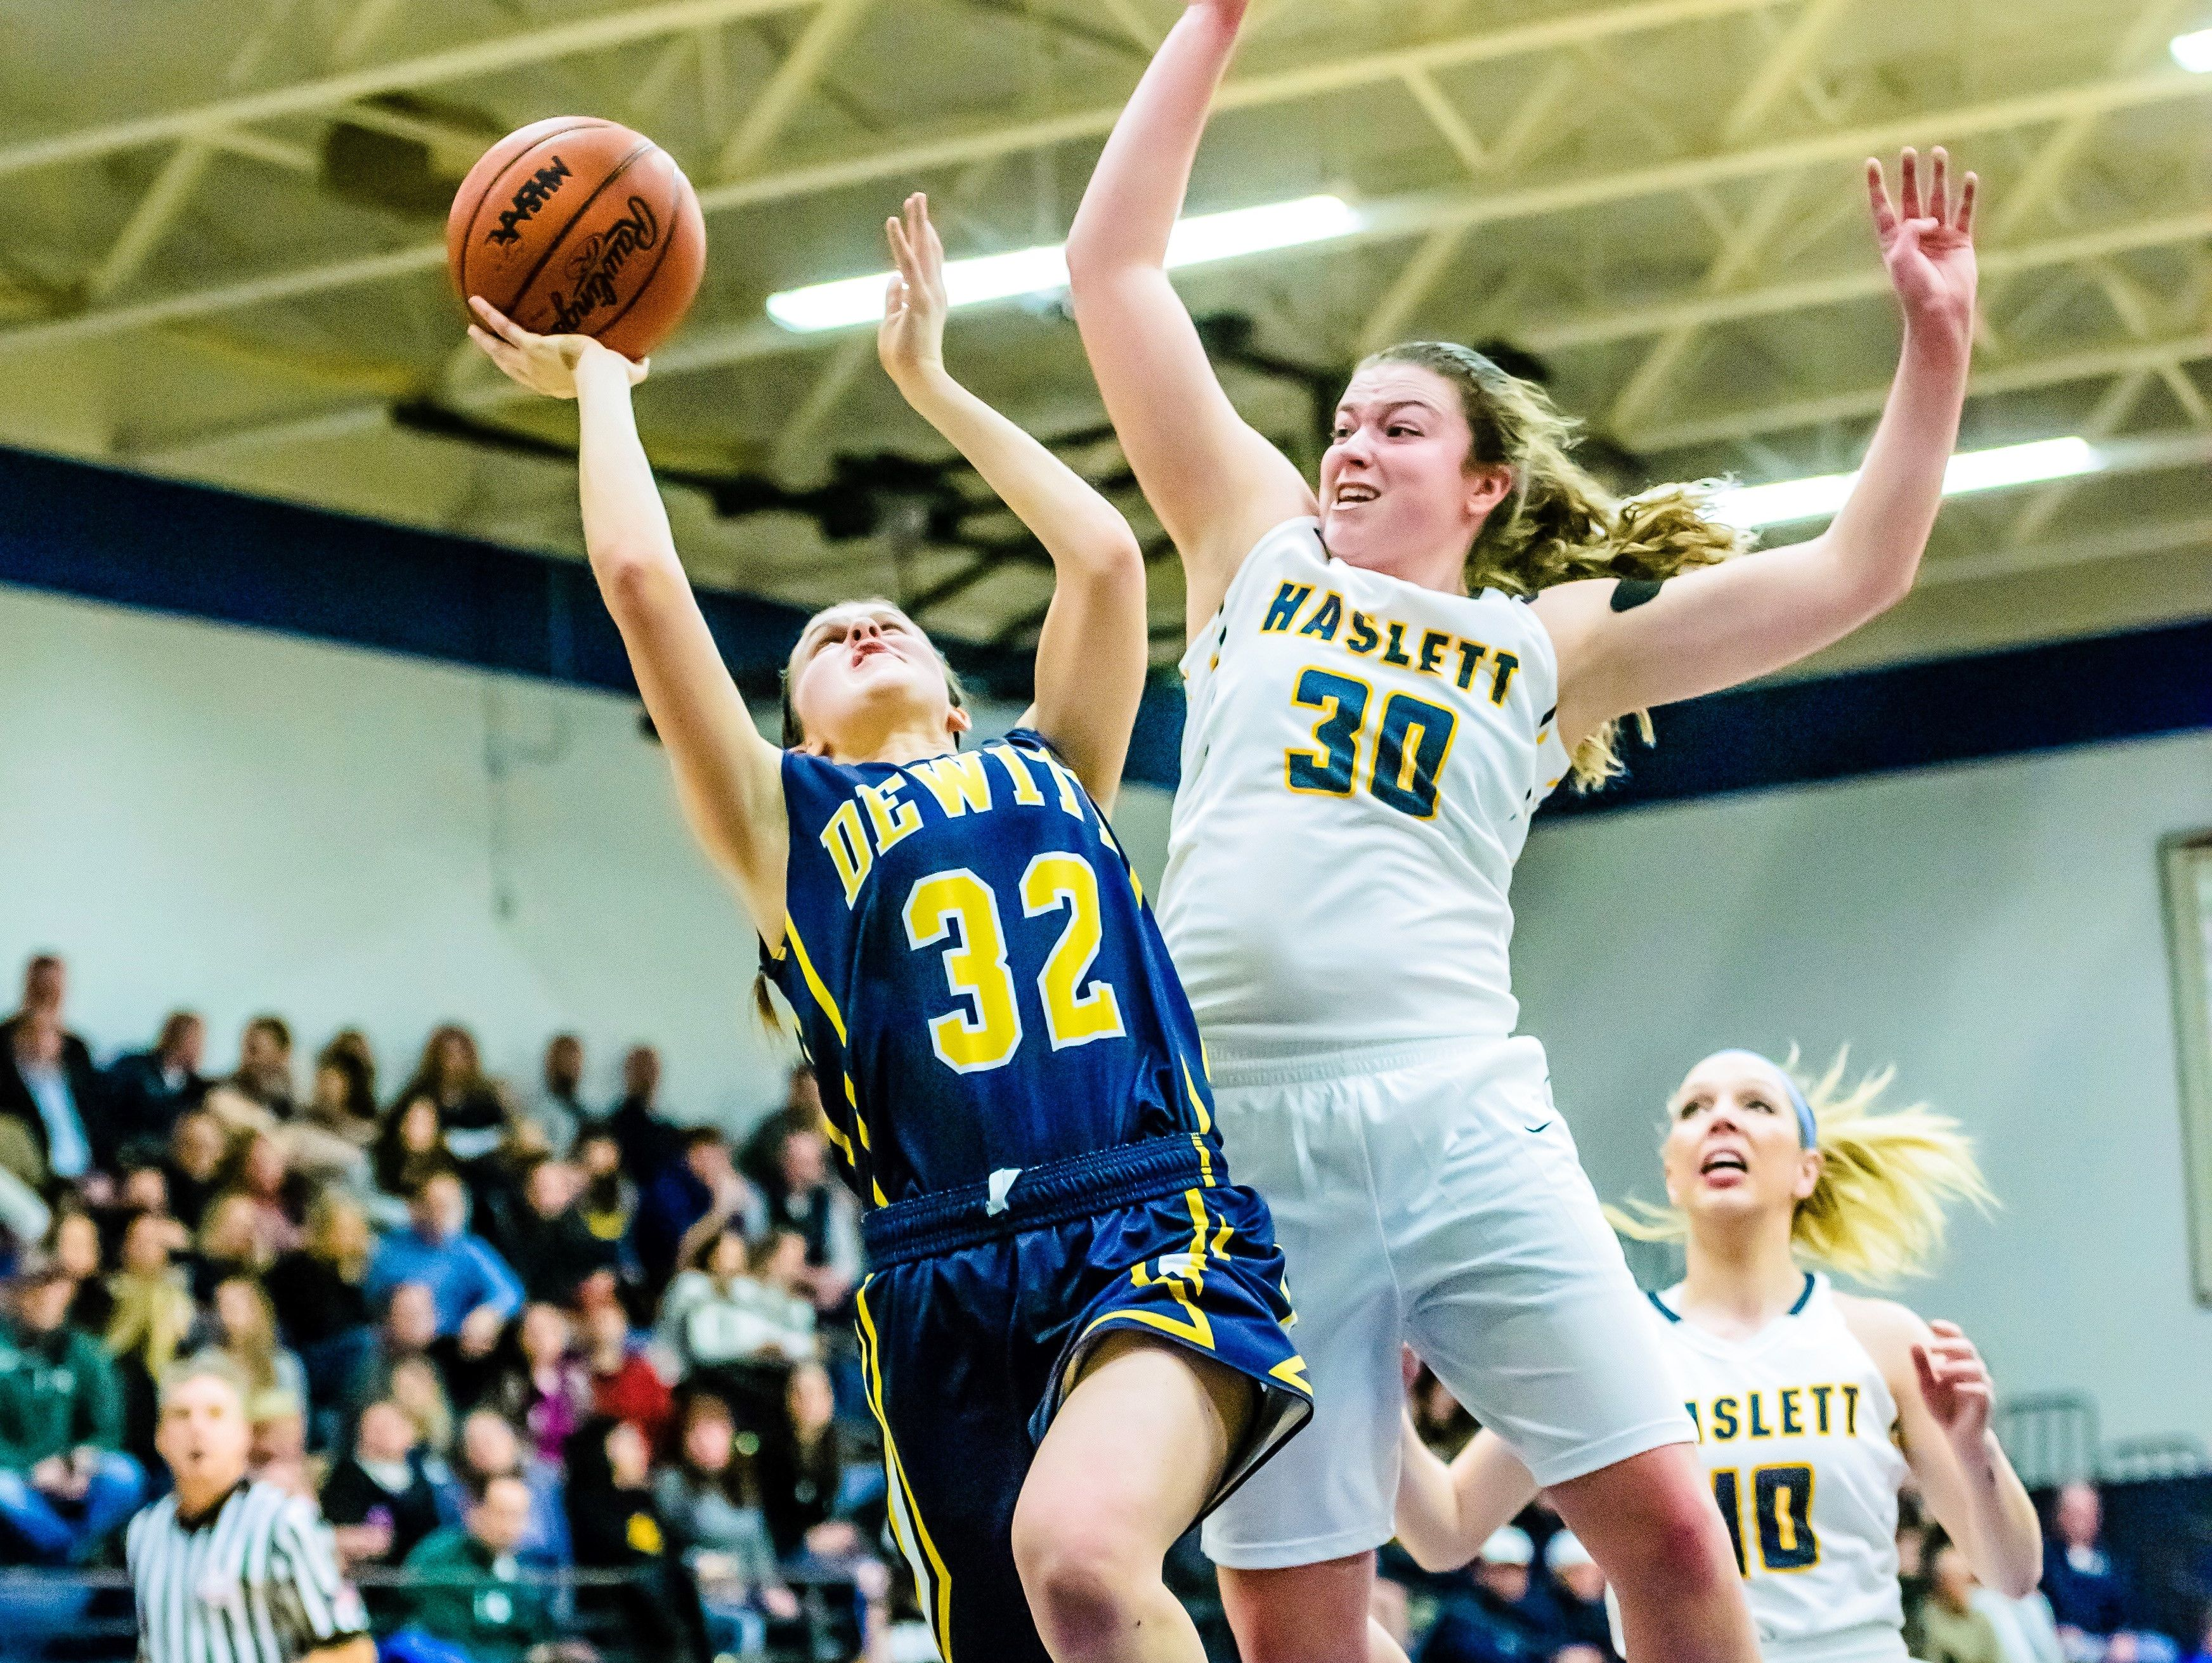 Sydnee Dennis ,30, of Haslett winds up to block a shot attempt by Jessah McManus of DeWitt during their game Friday February 17, 2017 in Haslett.